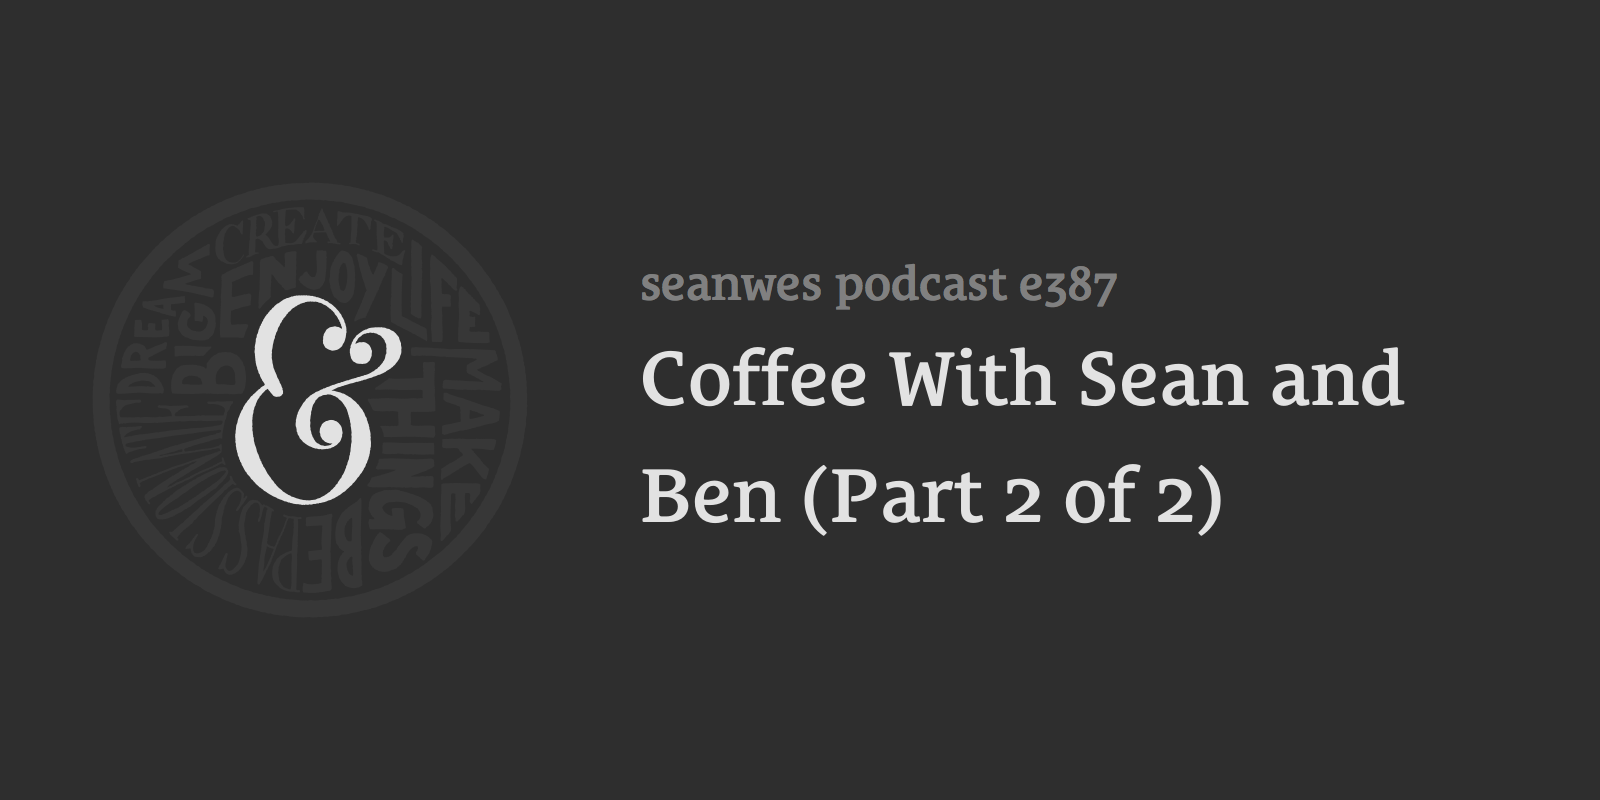 Coffee With Sean and Ben (Part 2 of 2)